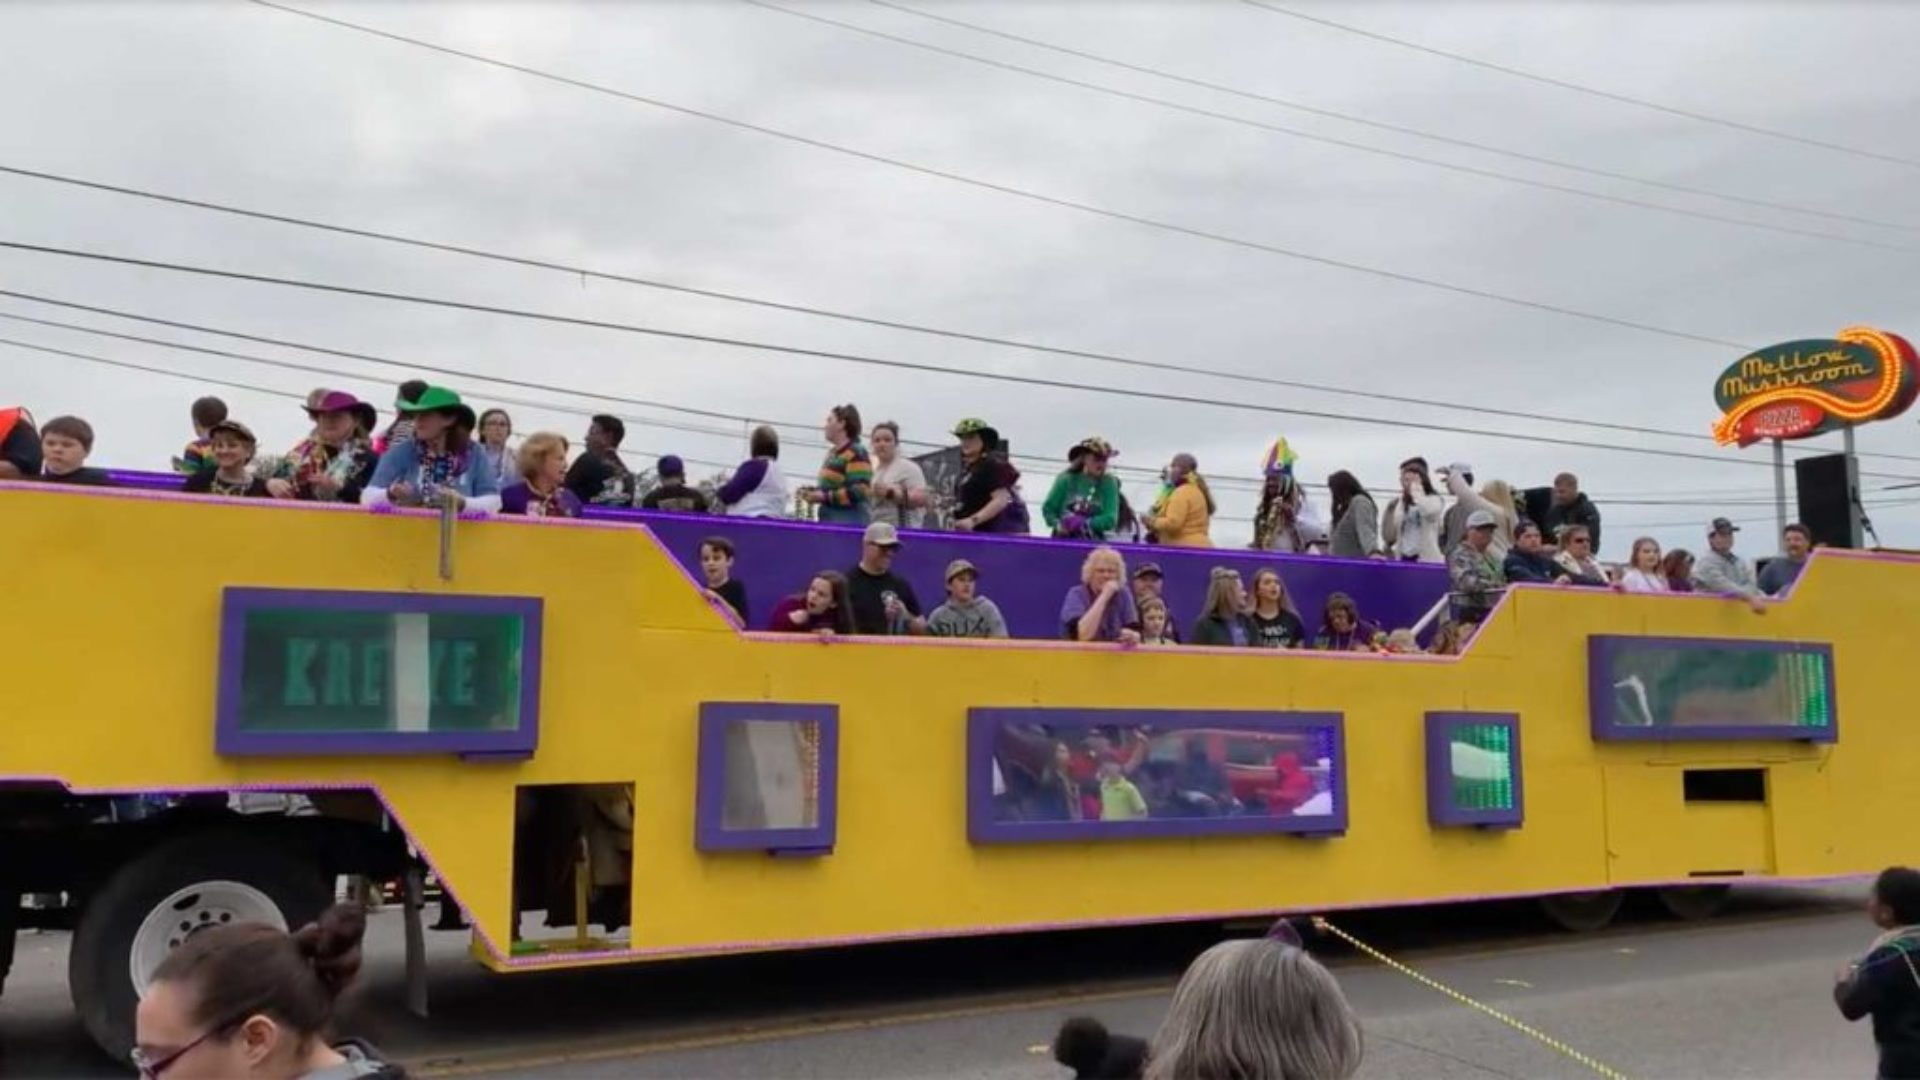 Happy-Mardi-Gras-From-Lake-Charles-La